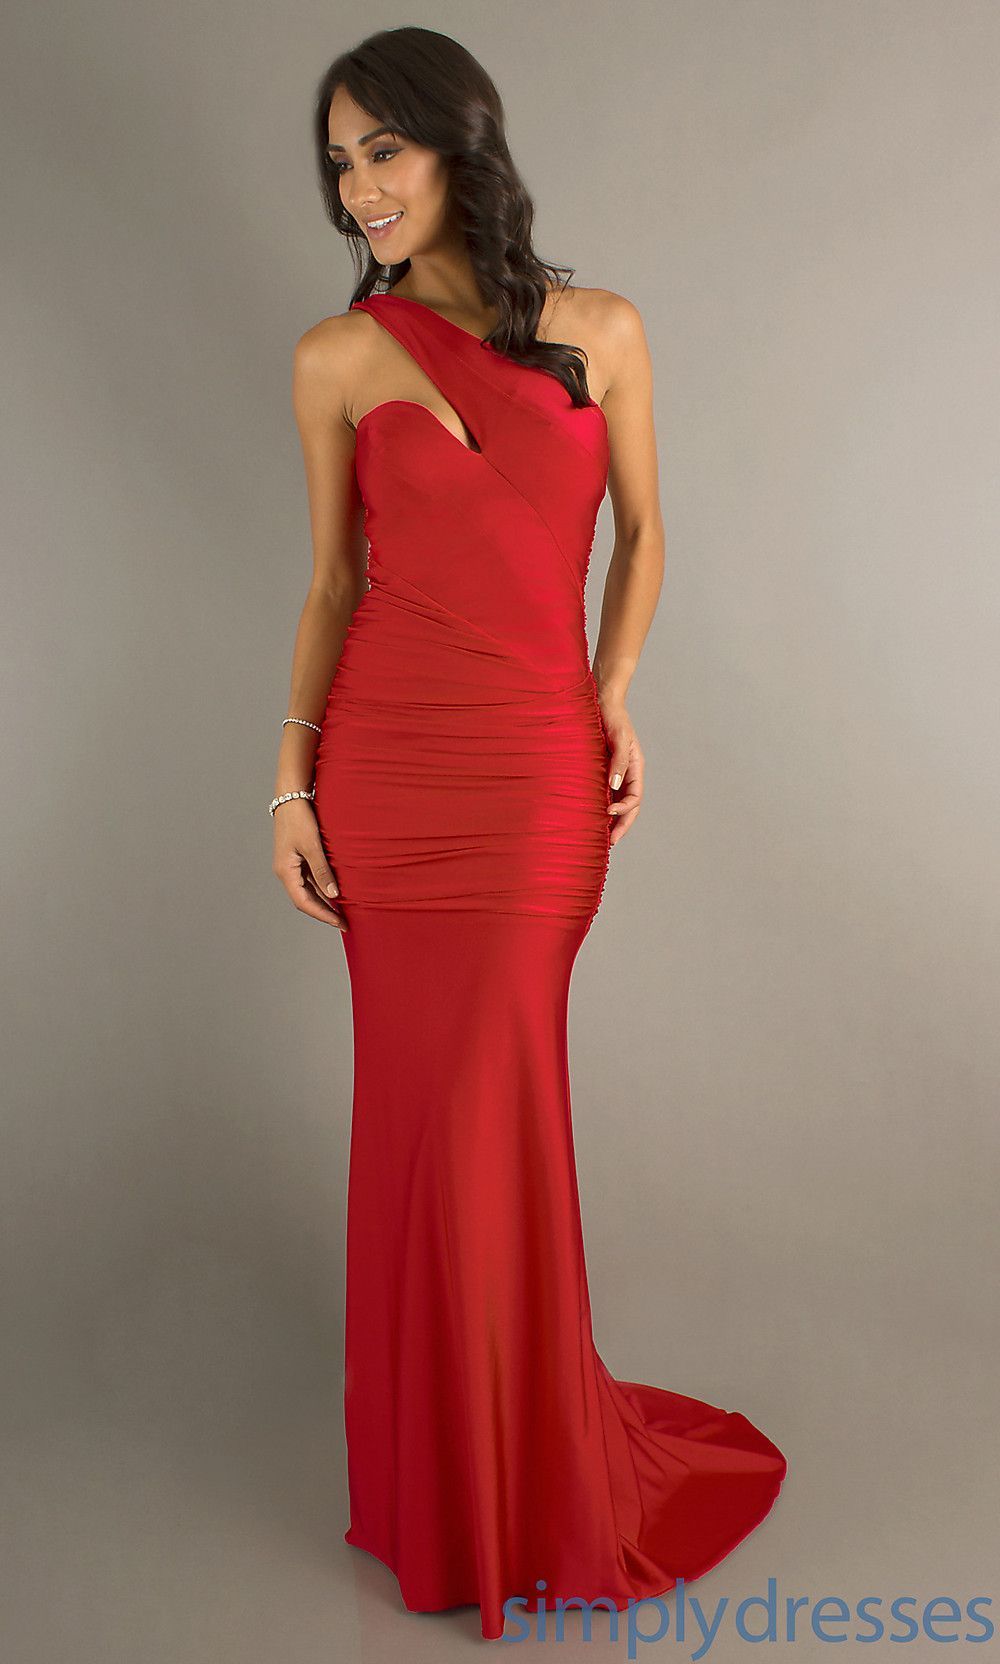 This might be the one heart ball one shoulder red dress at